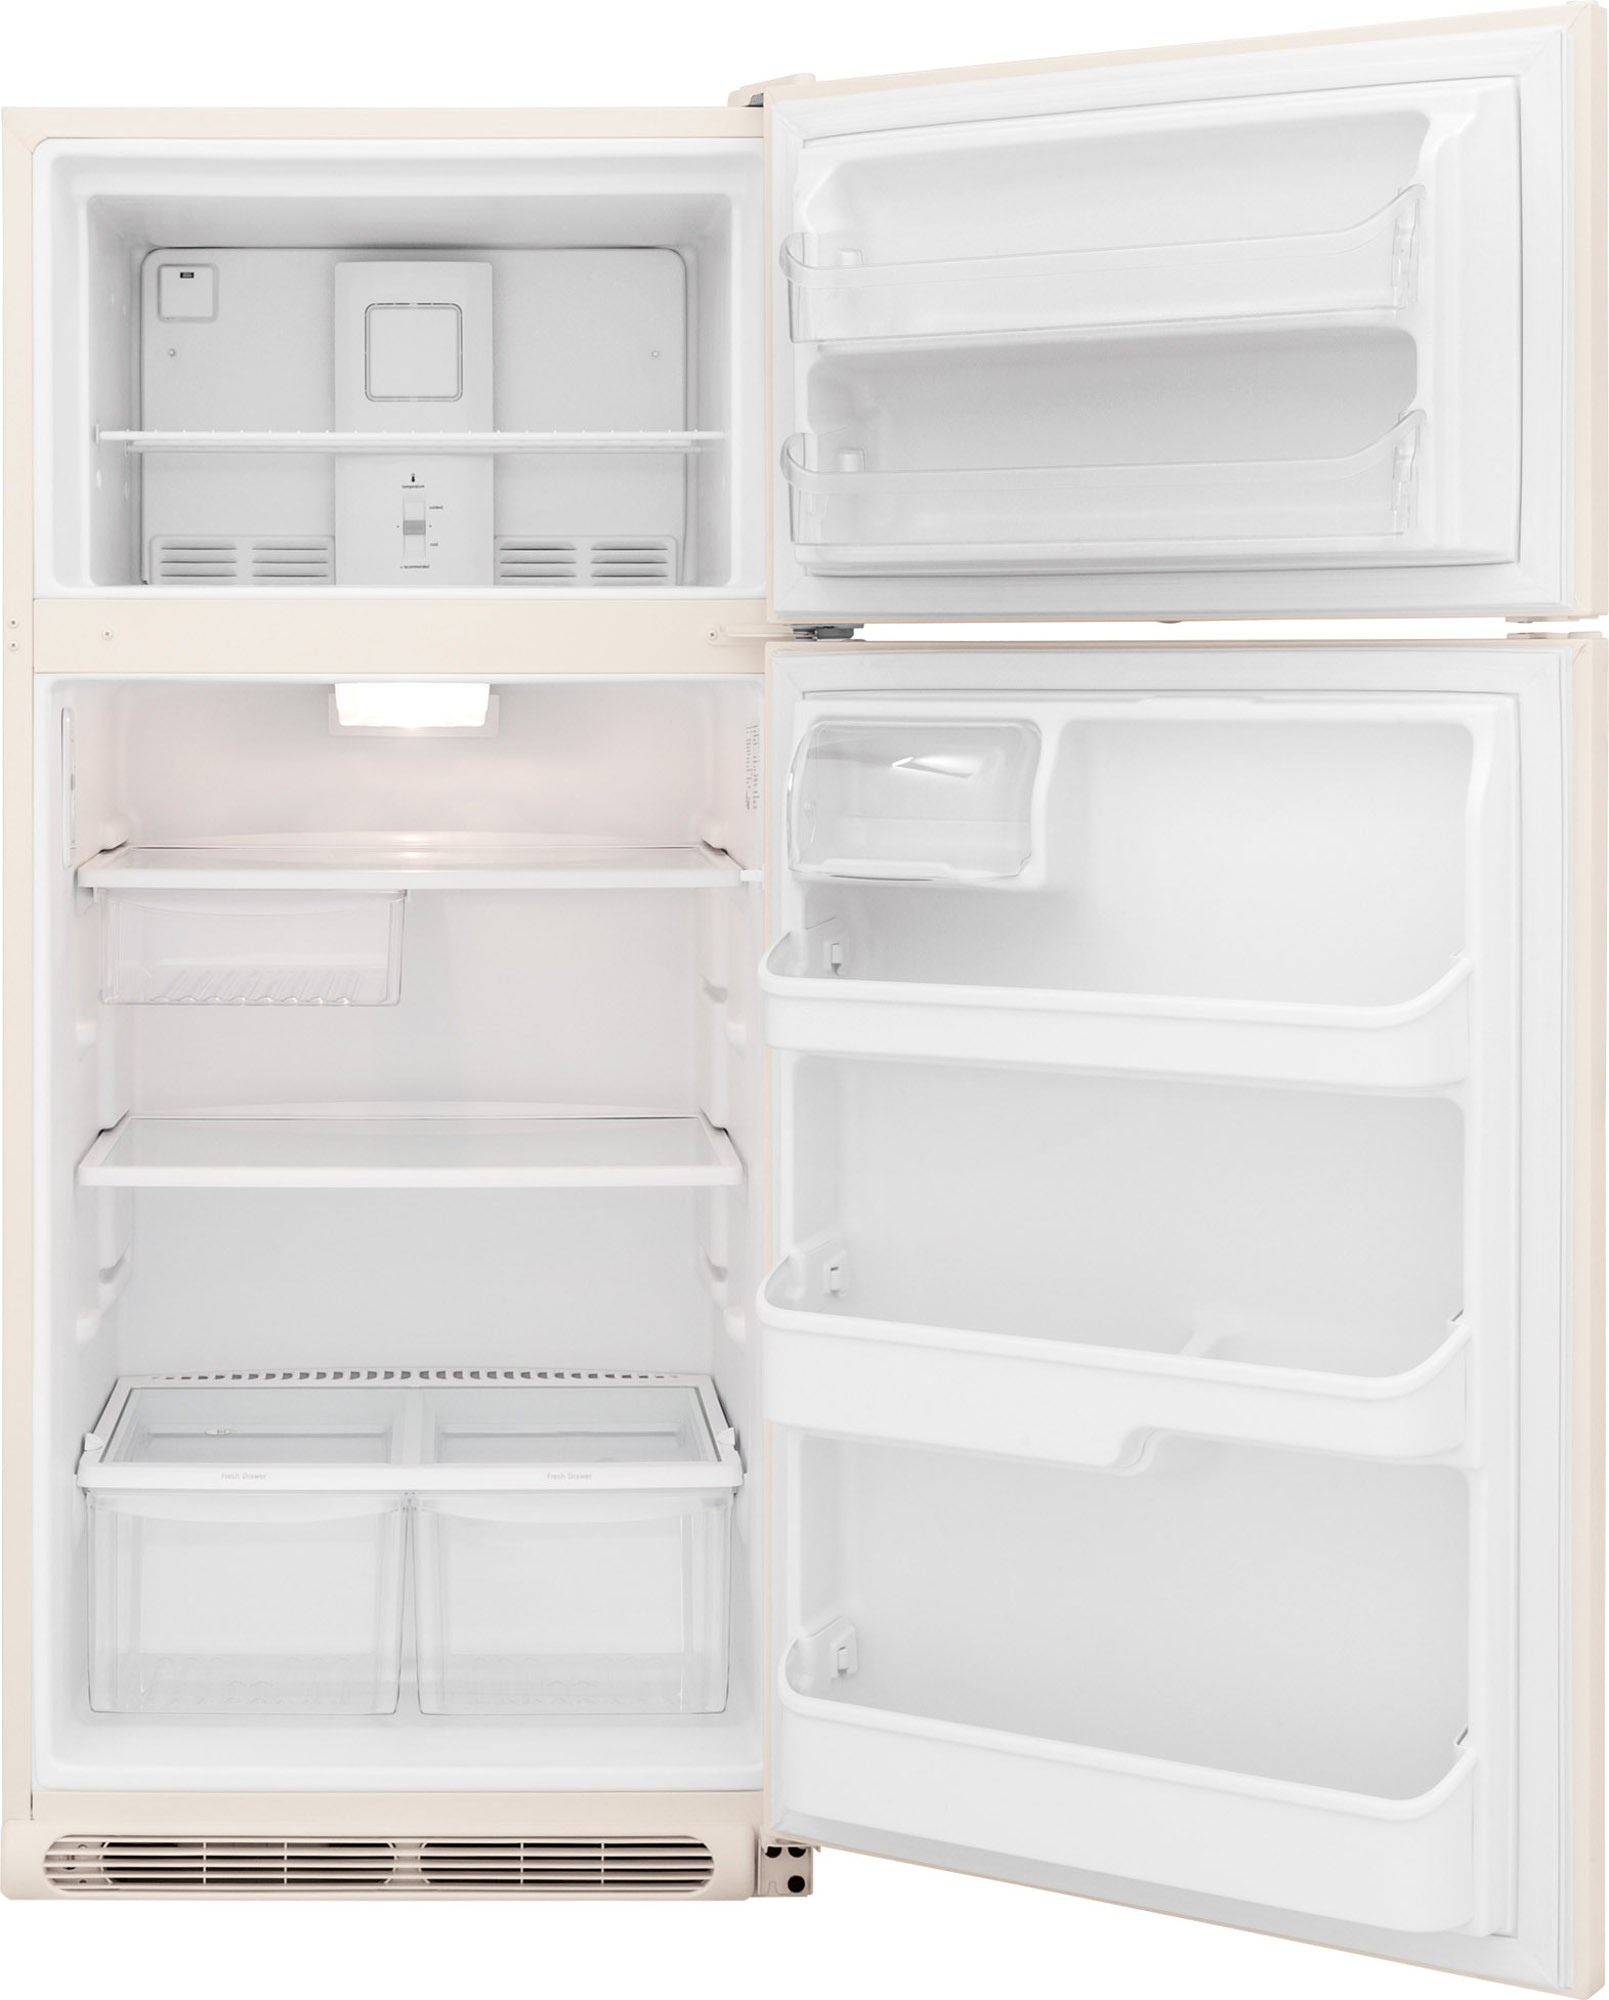 Frigidaire FFHT1831QQ 18 cu. ft. Top Mount Refrigerator - Bisque